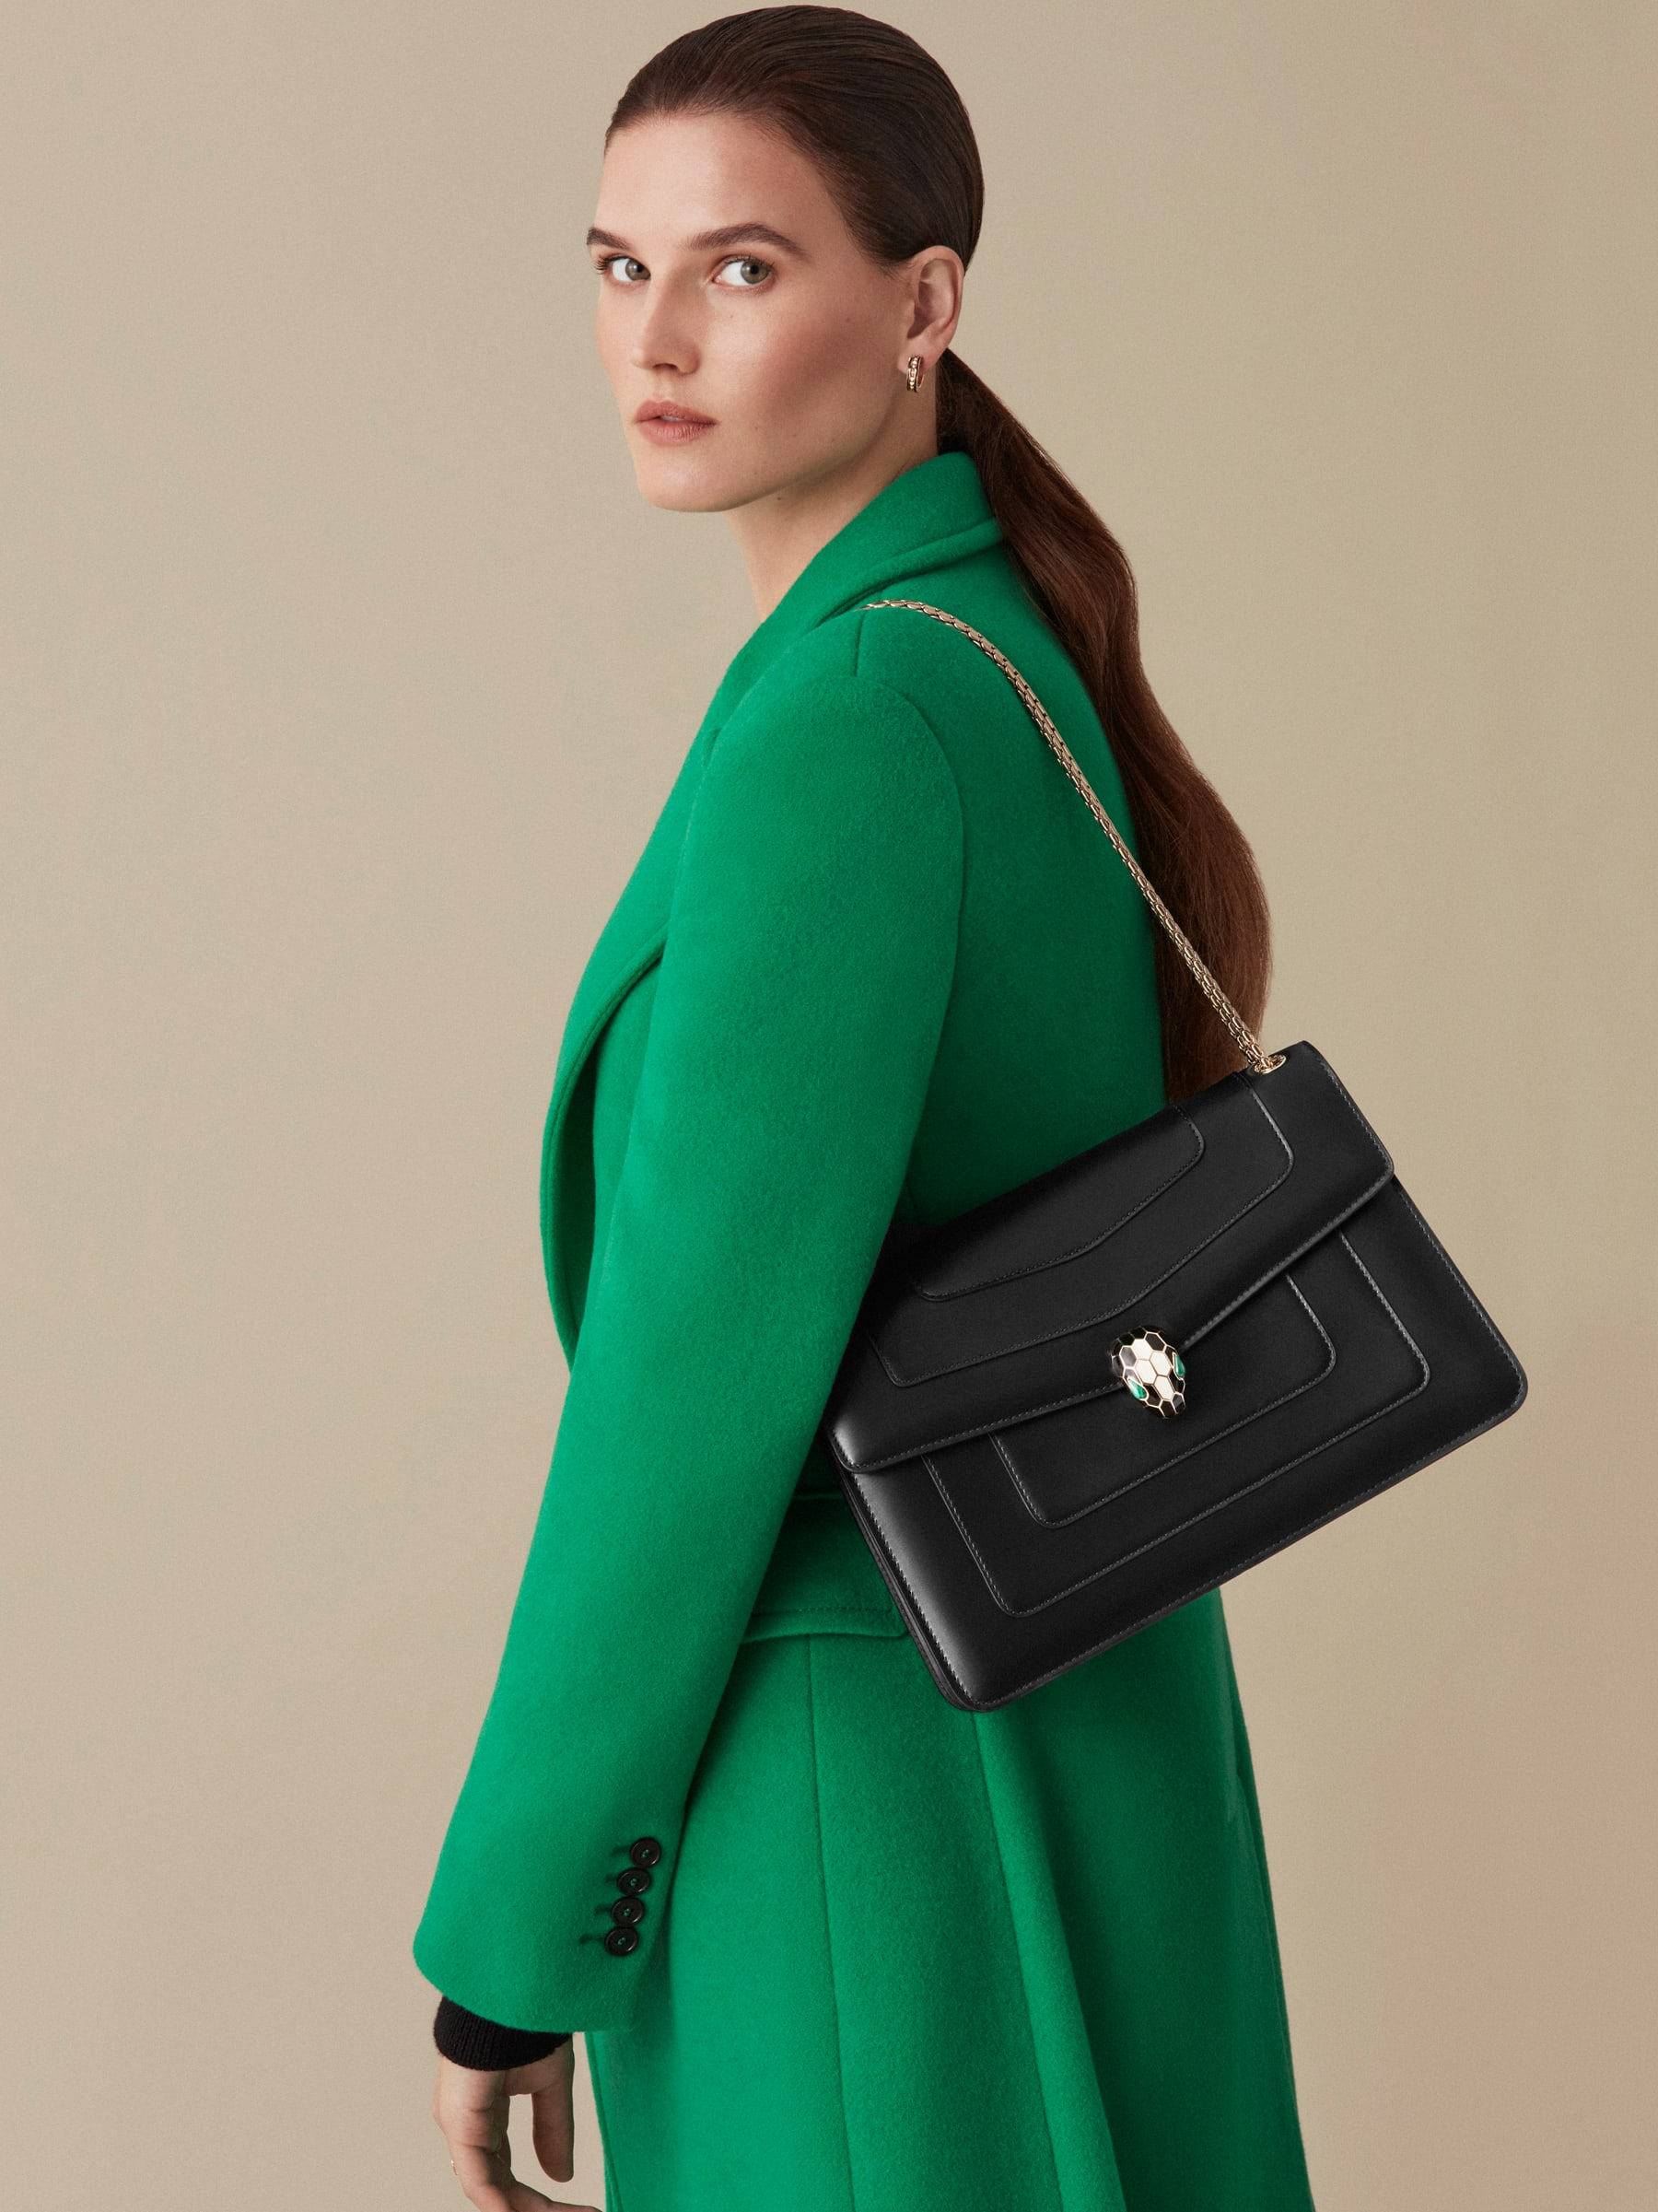 """""""Serpenti Forever"""" shoulder bag in black calf leather with emerald green gros grain internal lining. Iconic snakehead closure in light gold plated brass enriched with black and white agate enamel and green malachite eyes. 1089-Cla image 4"""